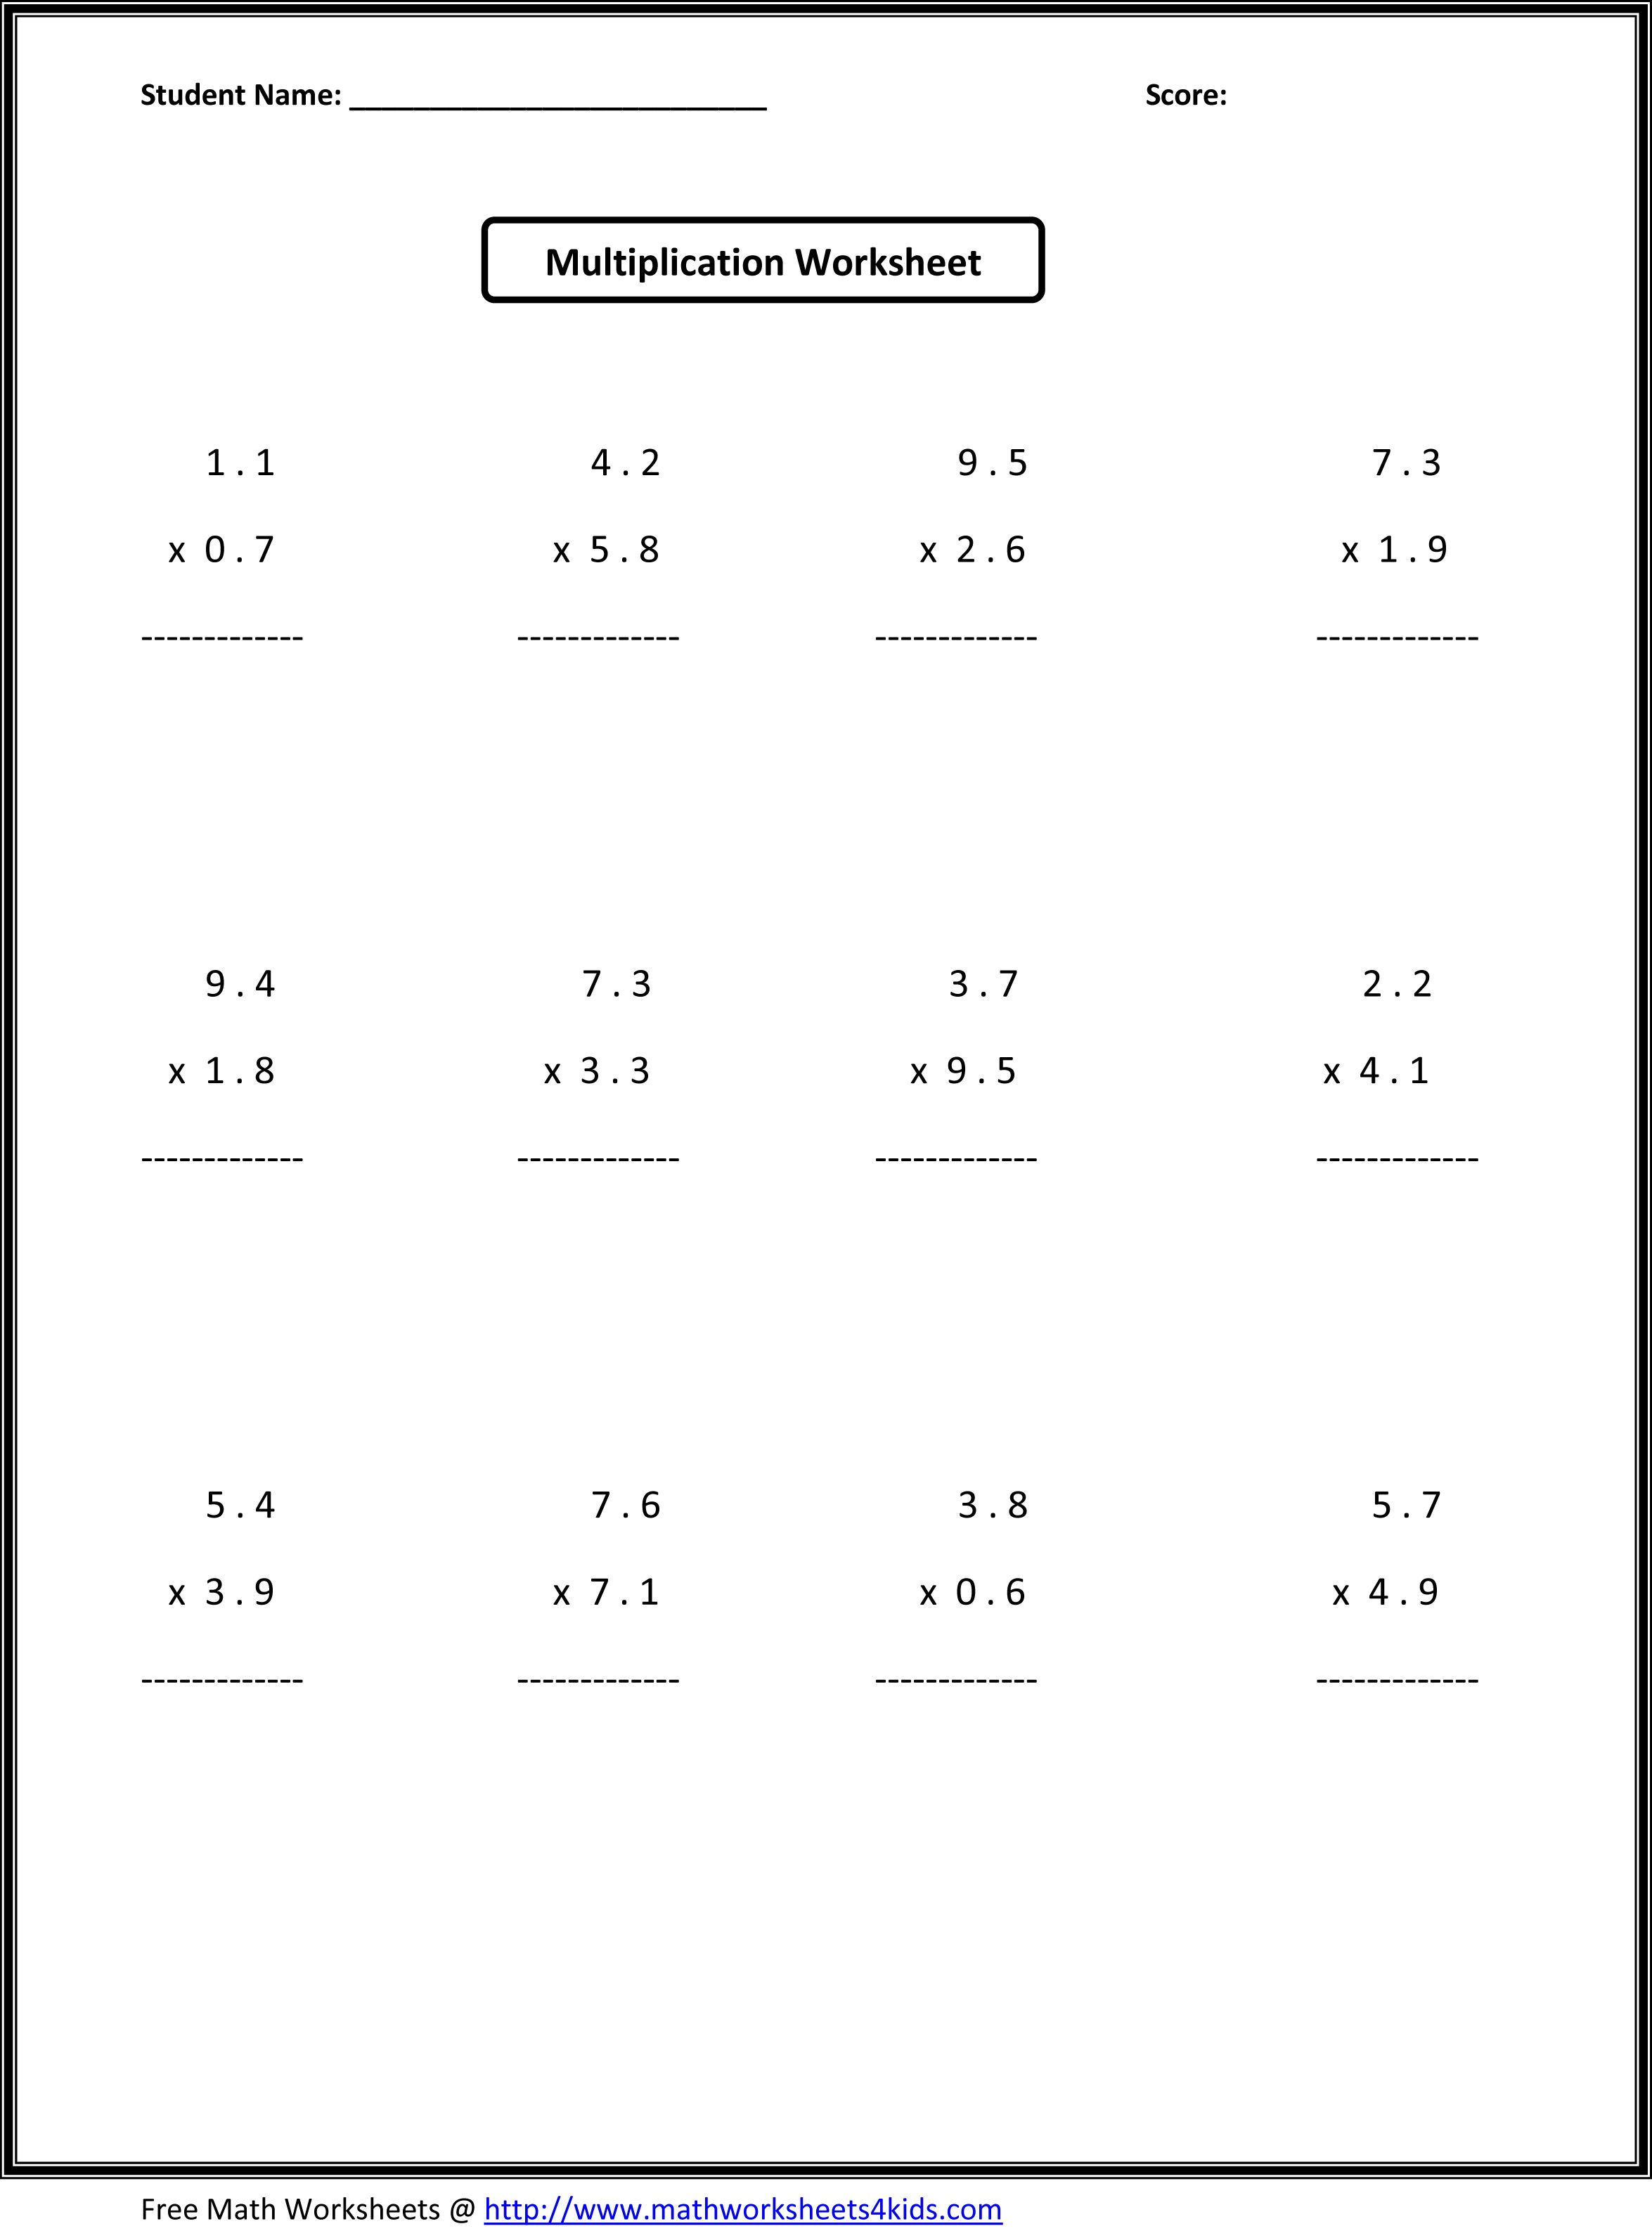 Printables 6th Grade Math Worksheets With Answer Key math kind of and worksheets on pinterest sixth grade have ratio multiplying dividing fractions algebraic expressions equations inequalities geometry probability more